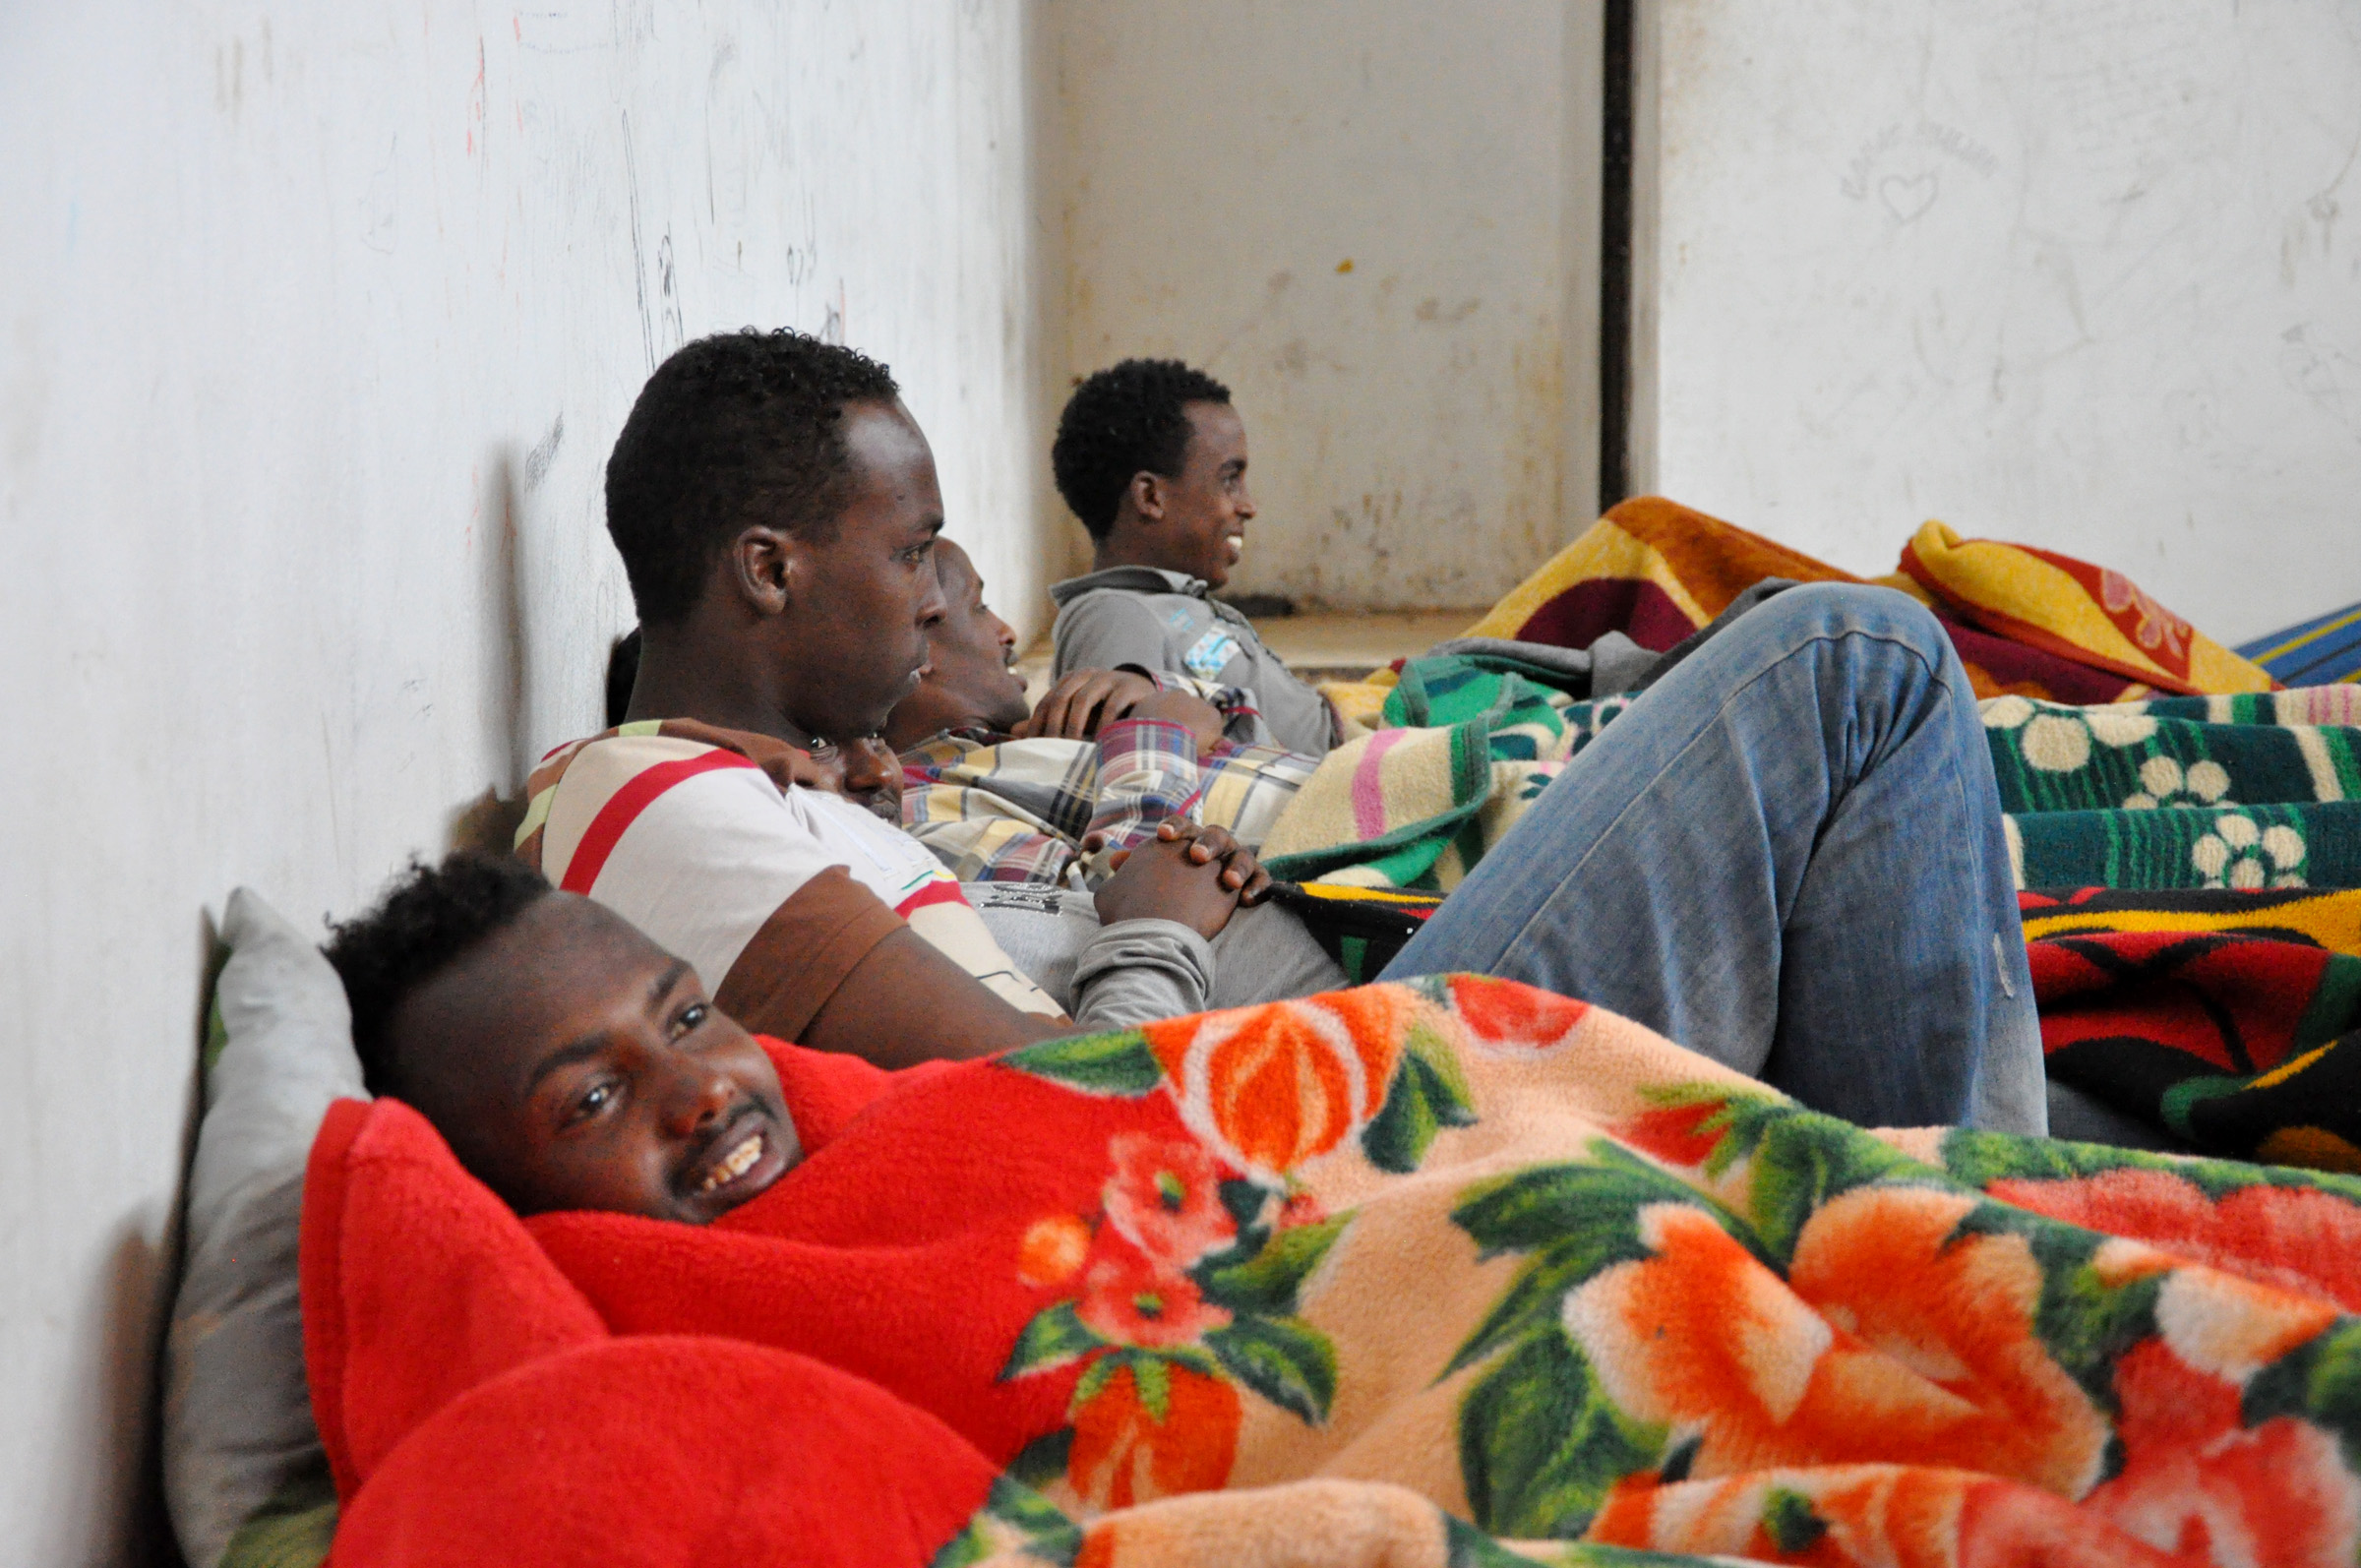 Somali migrants make up the majority of detainees in Ganfouda detention centre, according to the authorities